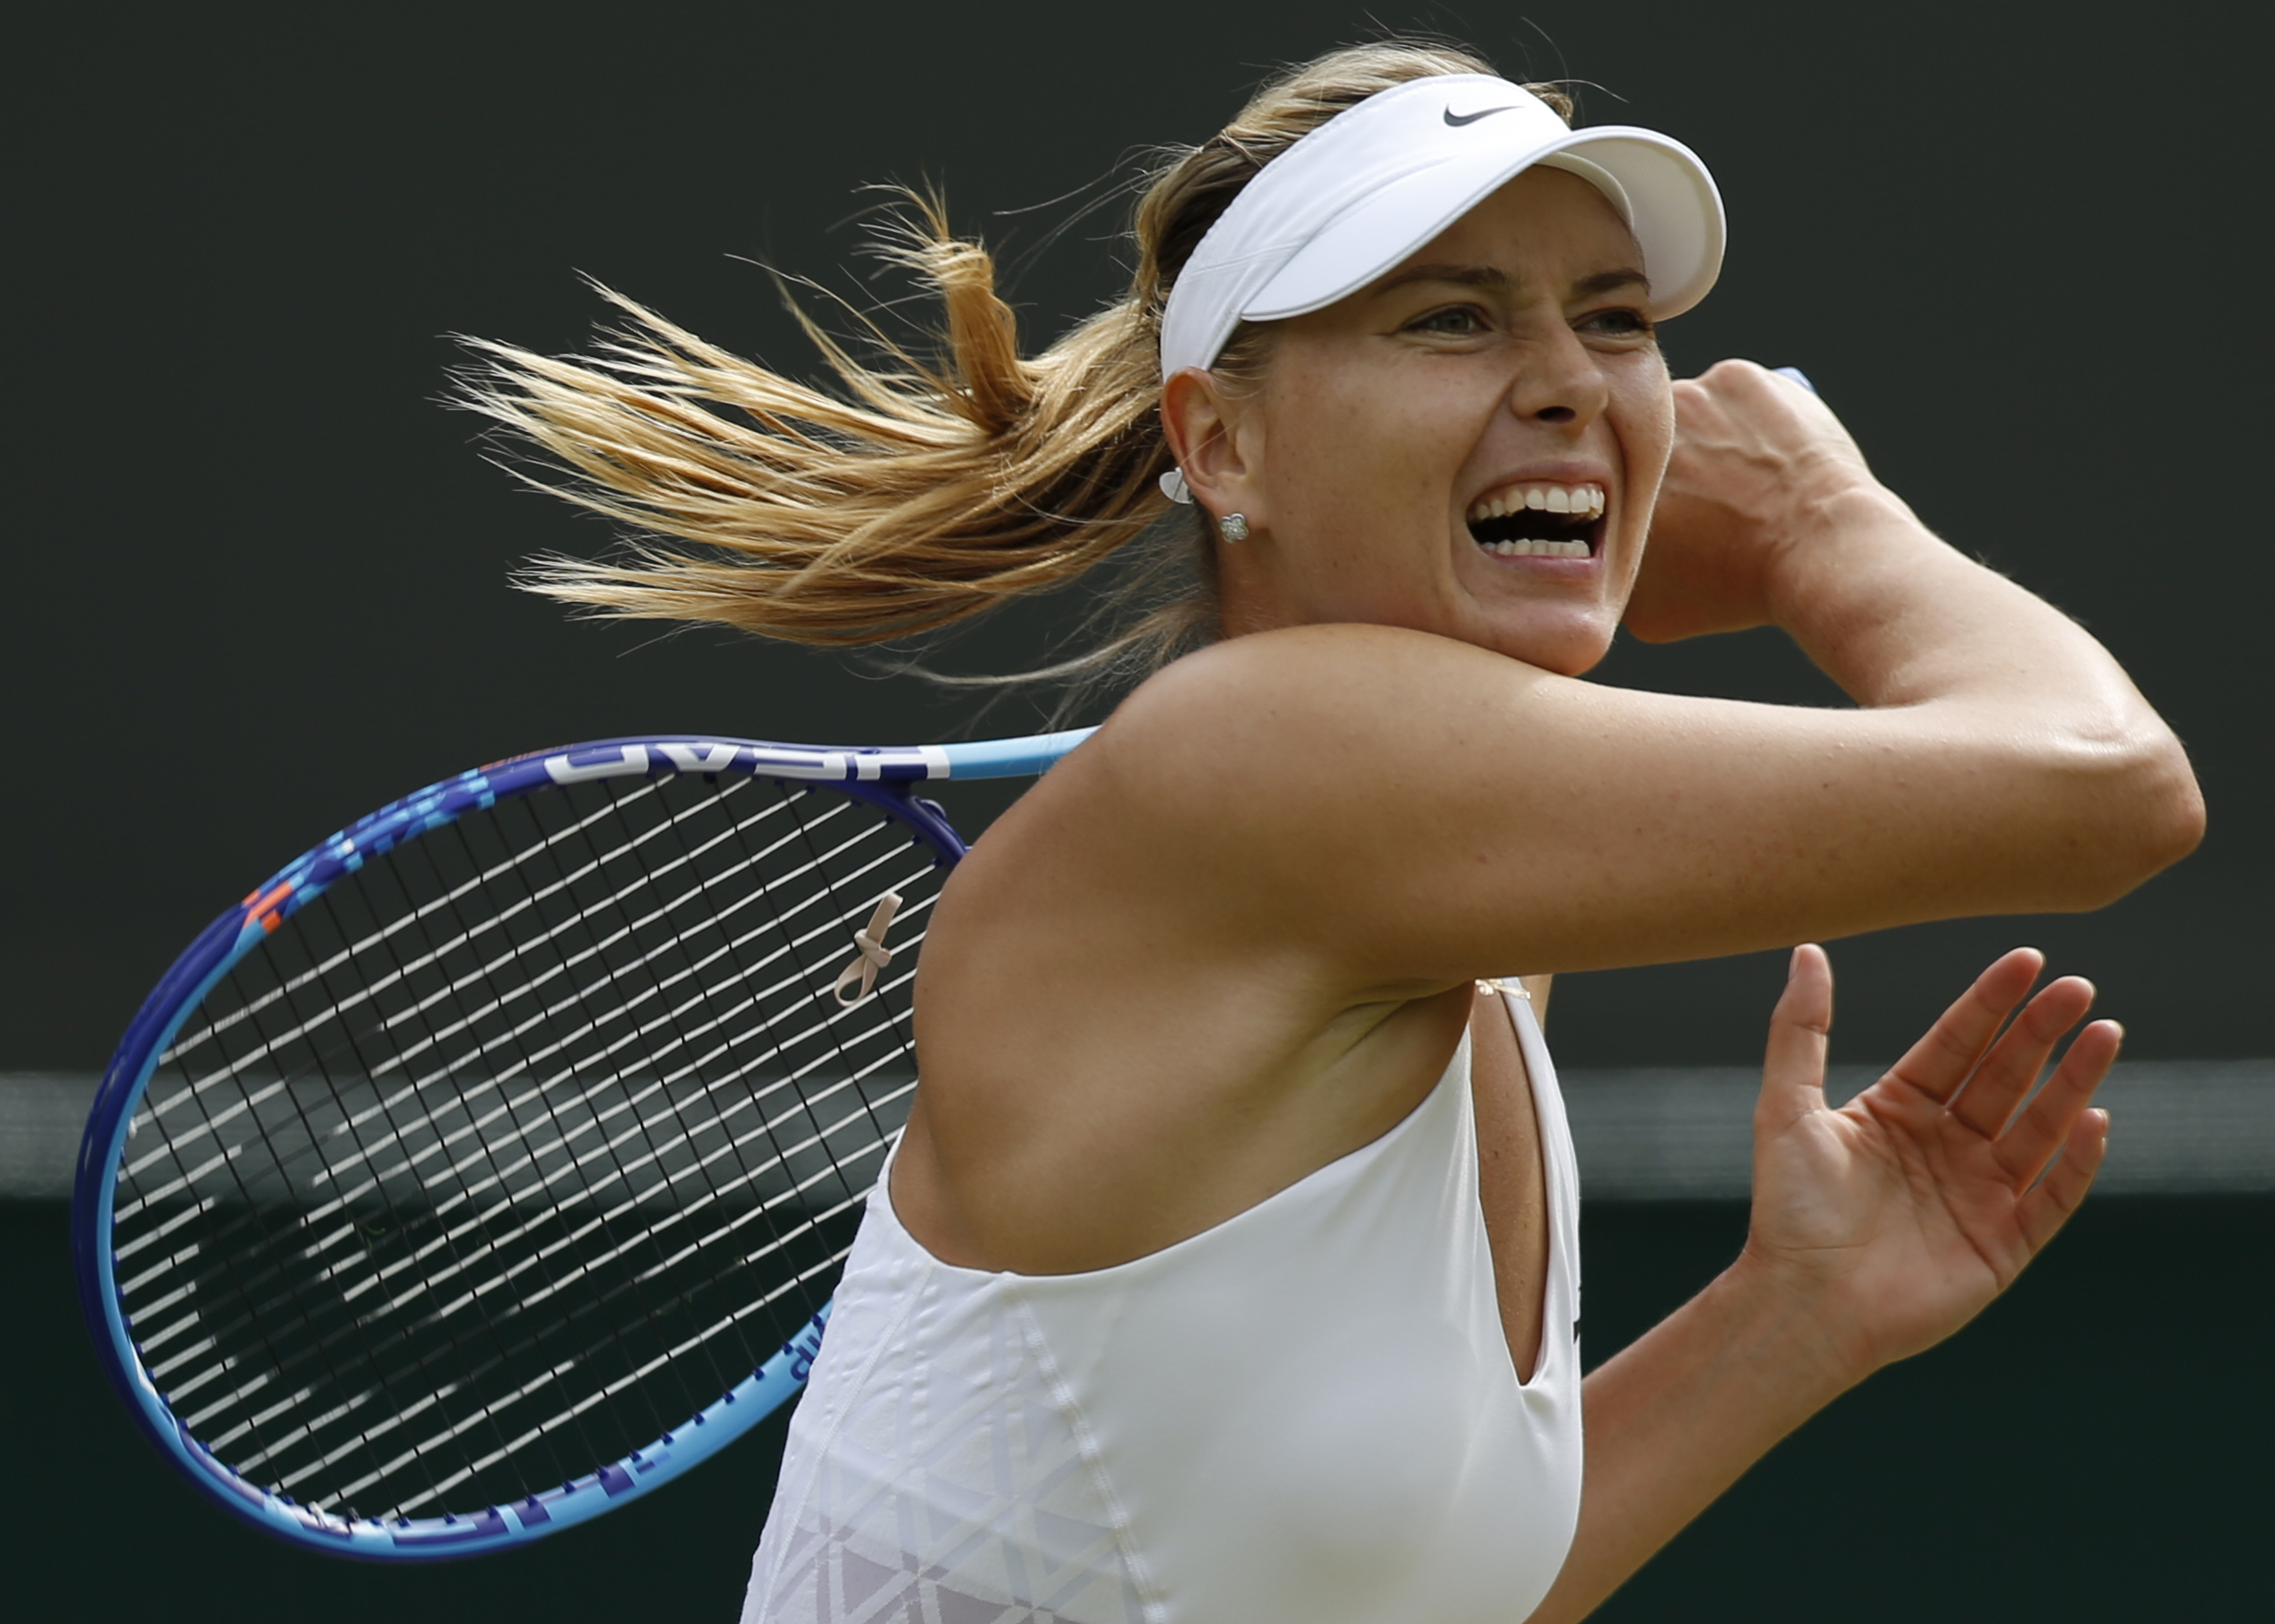 maria sharapova appealing tennis ban